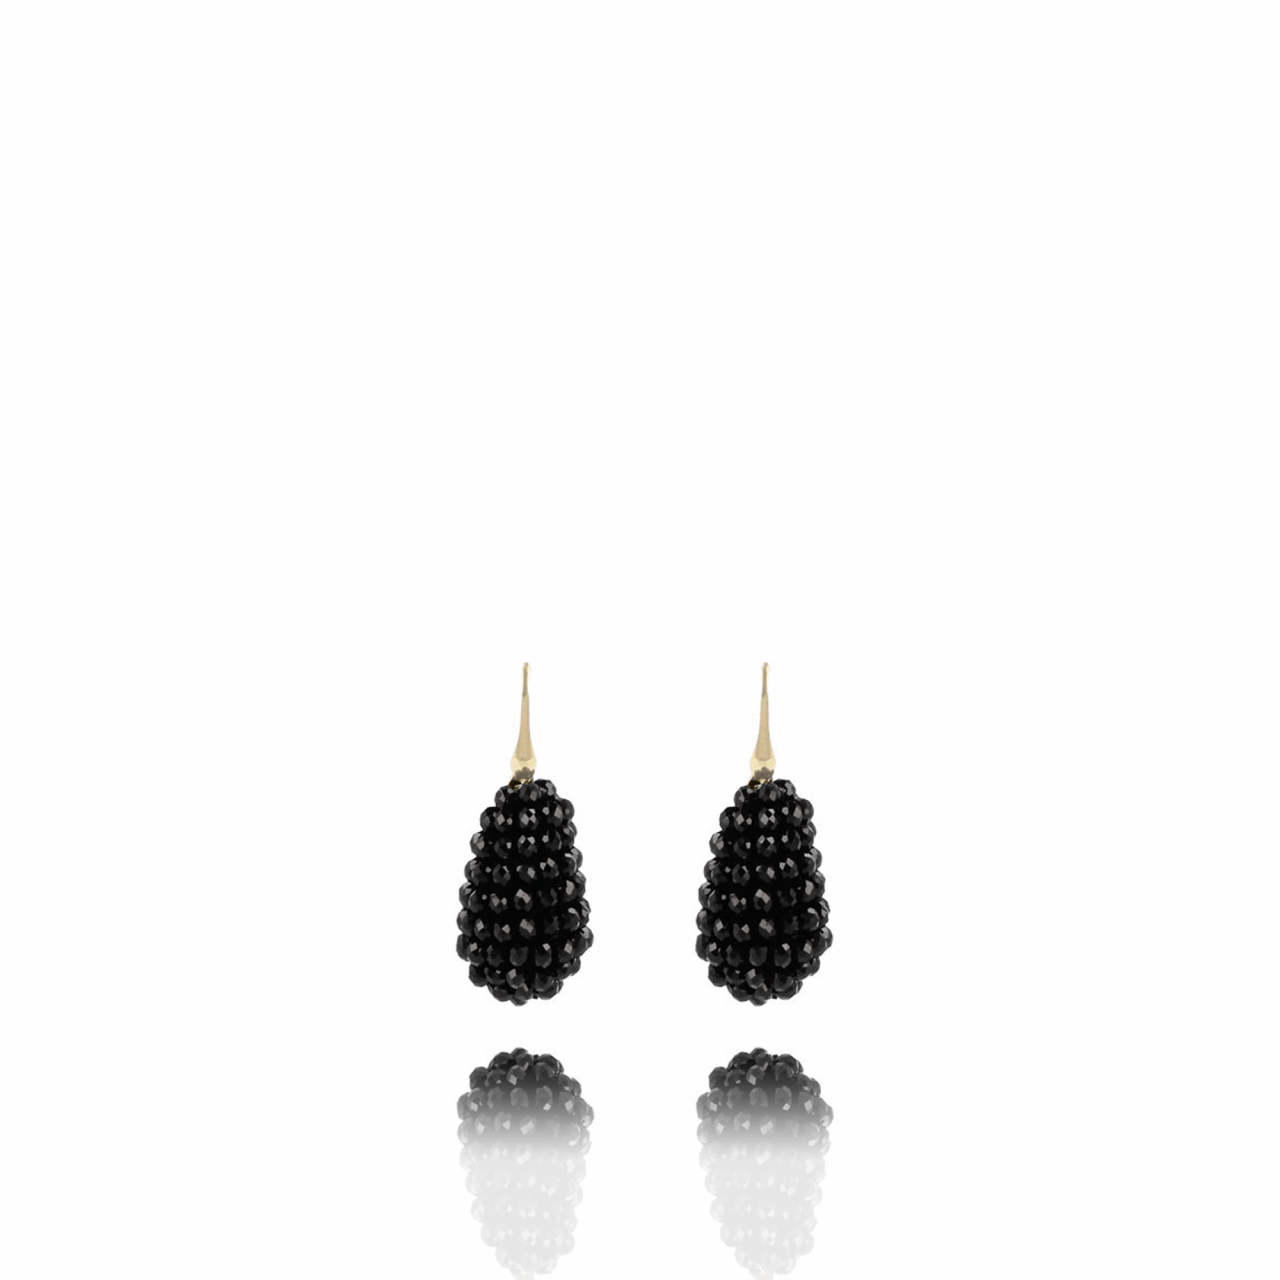 Glassberry Cone S Black Earring